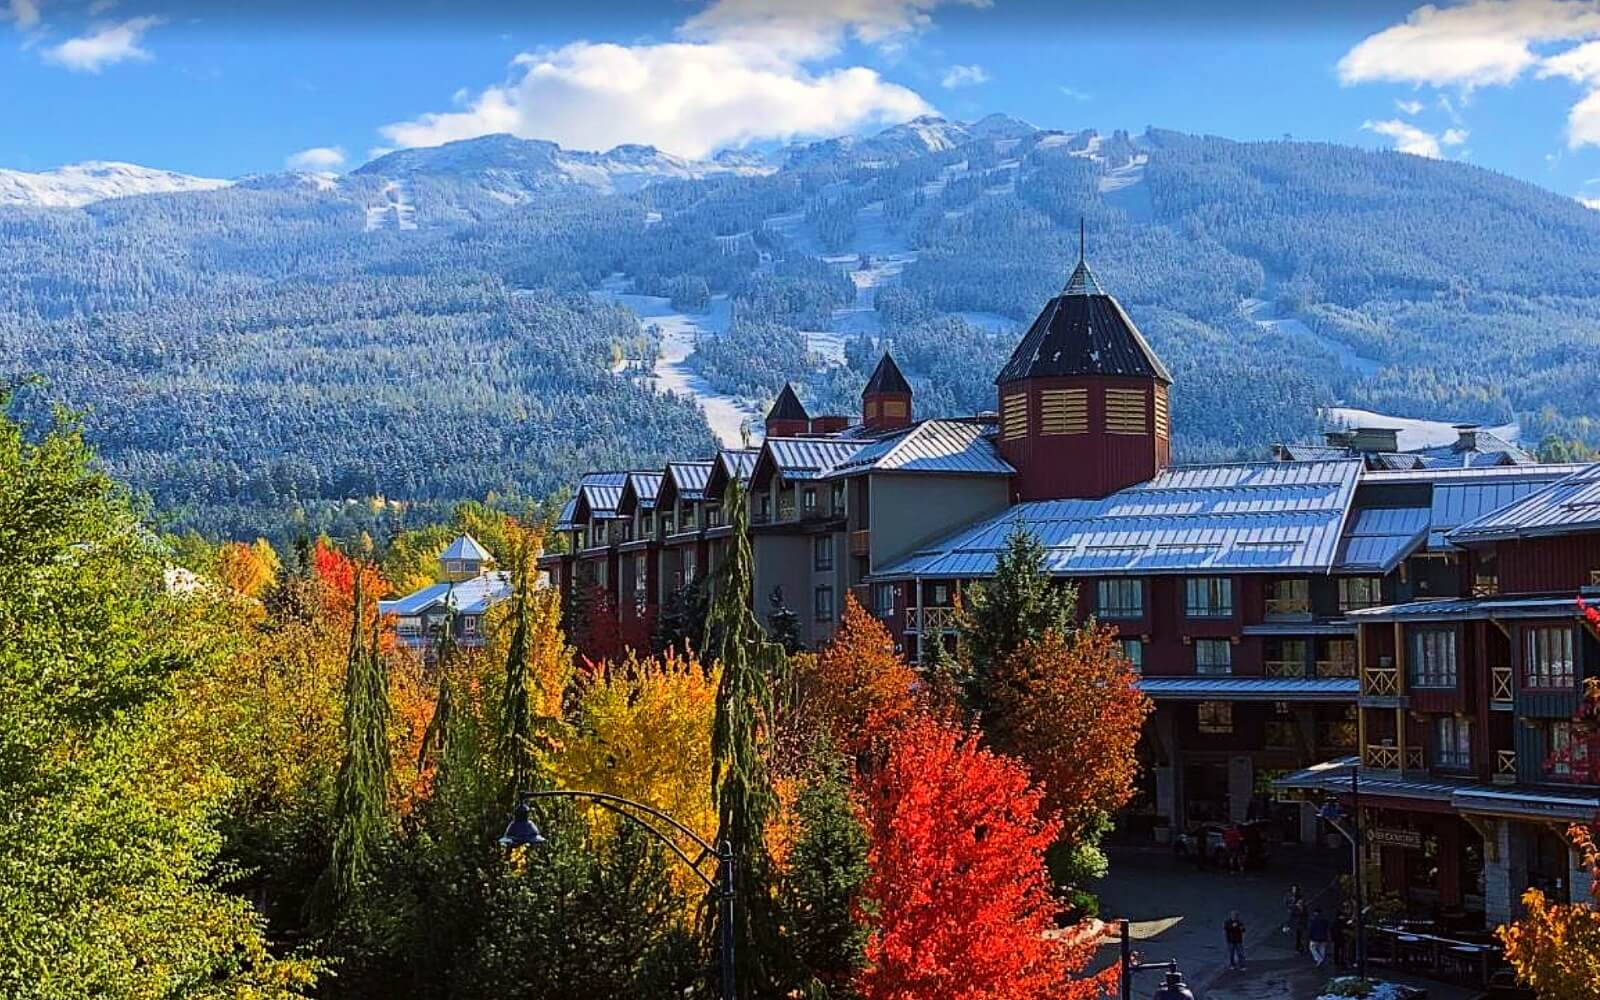 The Pinnacle Hotel sits in front of Whistler Mountain